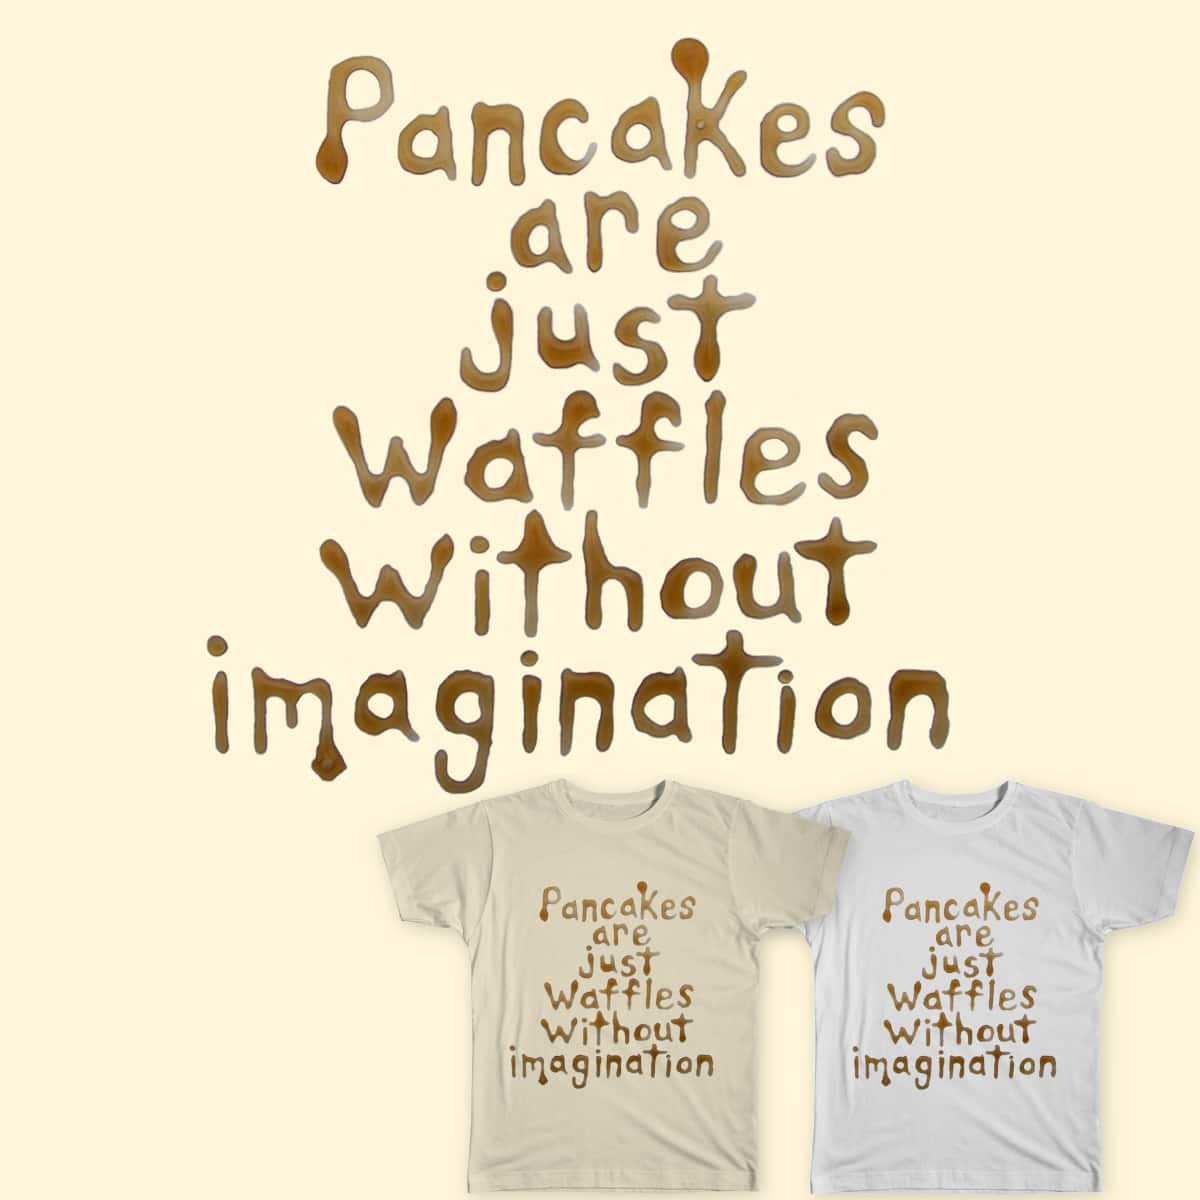 Pancakes are just waffles without imagination by Christina.A.art and rossmat8 on Threadless